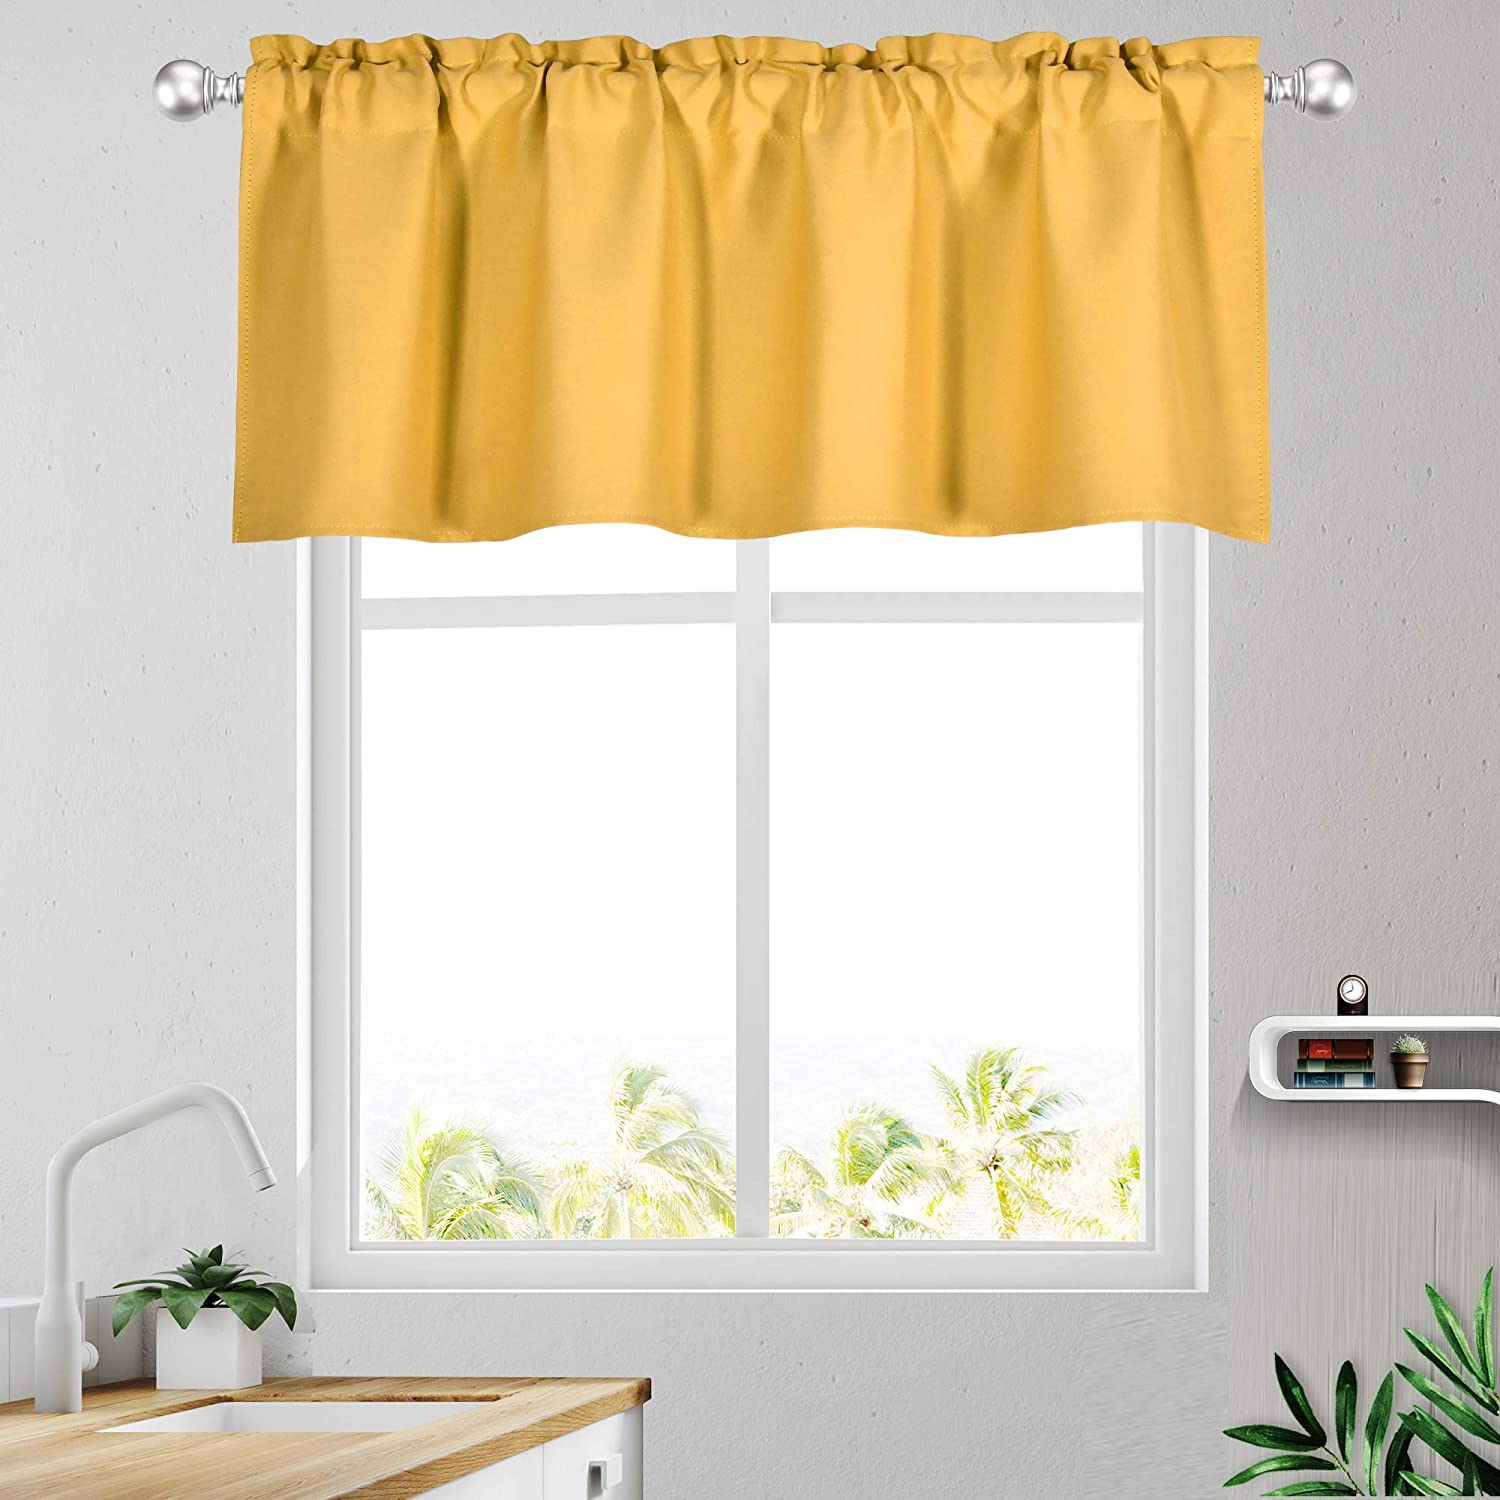 Amazon Com Keqiaosuocai Yellow Window Valance 52 Inch By 18 Inch Blackout Valance Curtains For Kitchen Bathroom 1 Panel 52w X 18l Home Kitchen